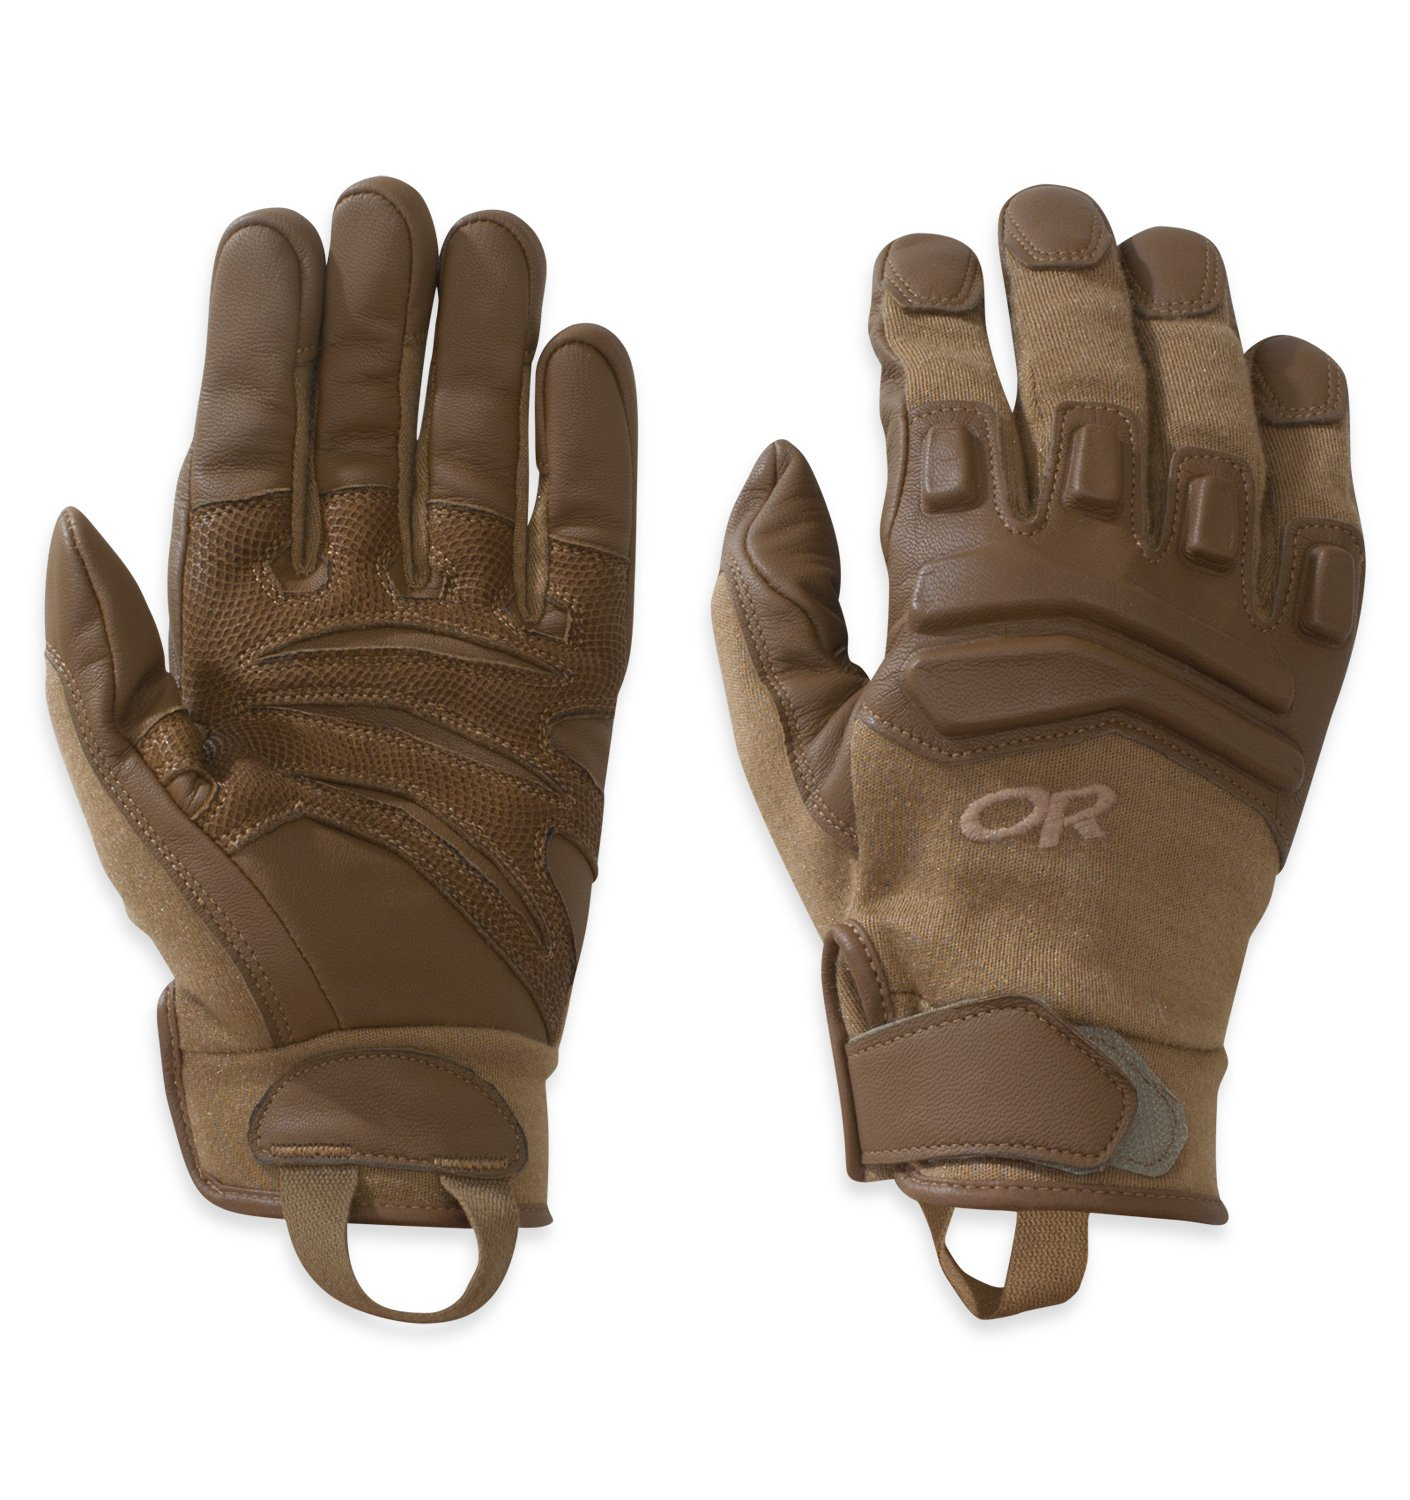 Outdoor Research Firemark Sensor Gloves, Coyote, Small